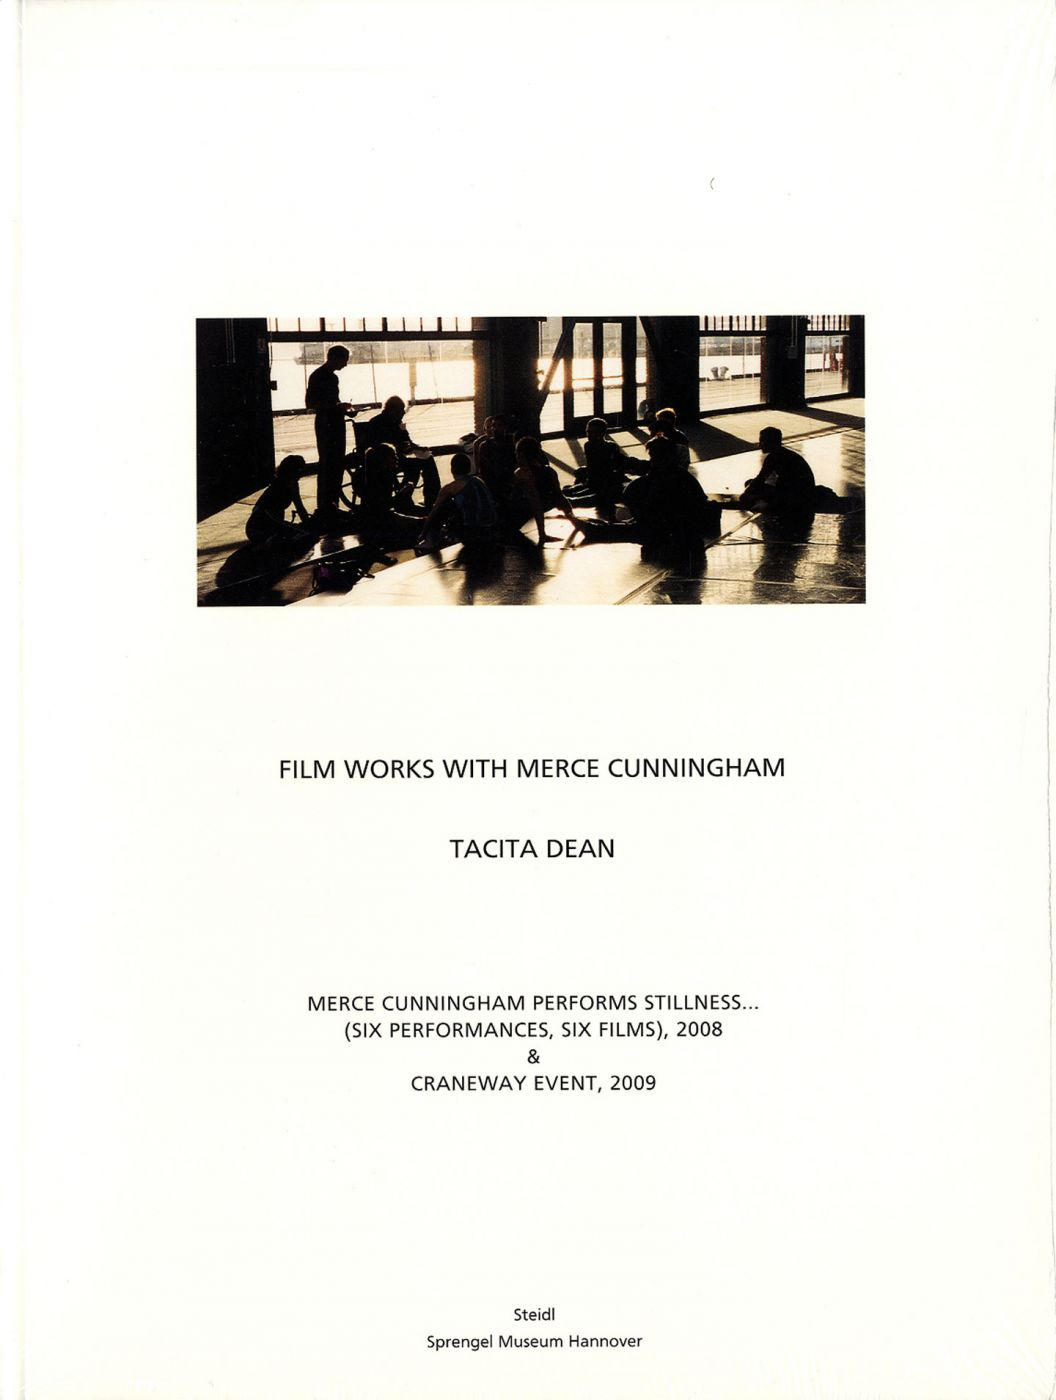 Tacita Dean: Film Works with Merce Cunningham